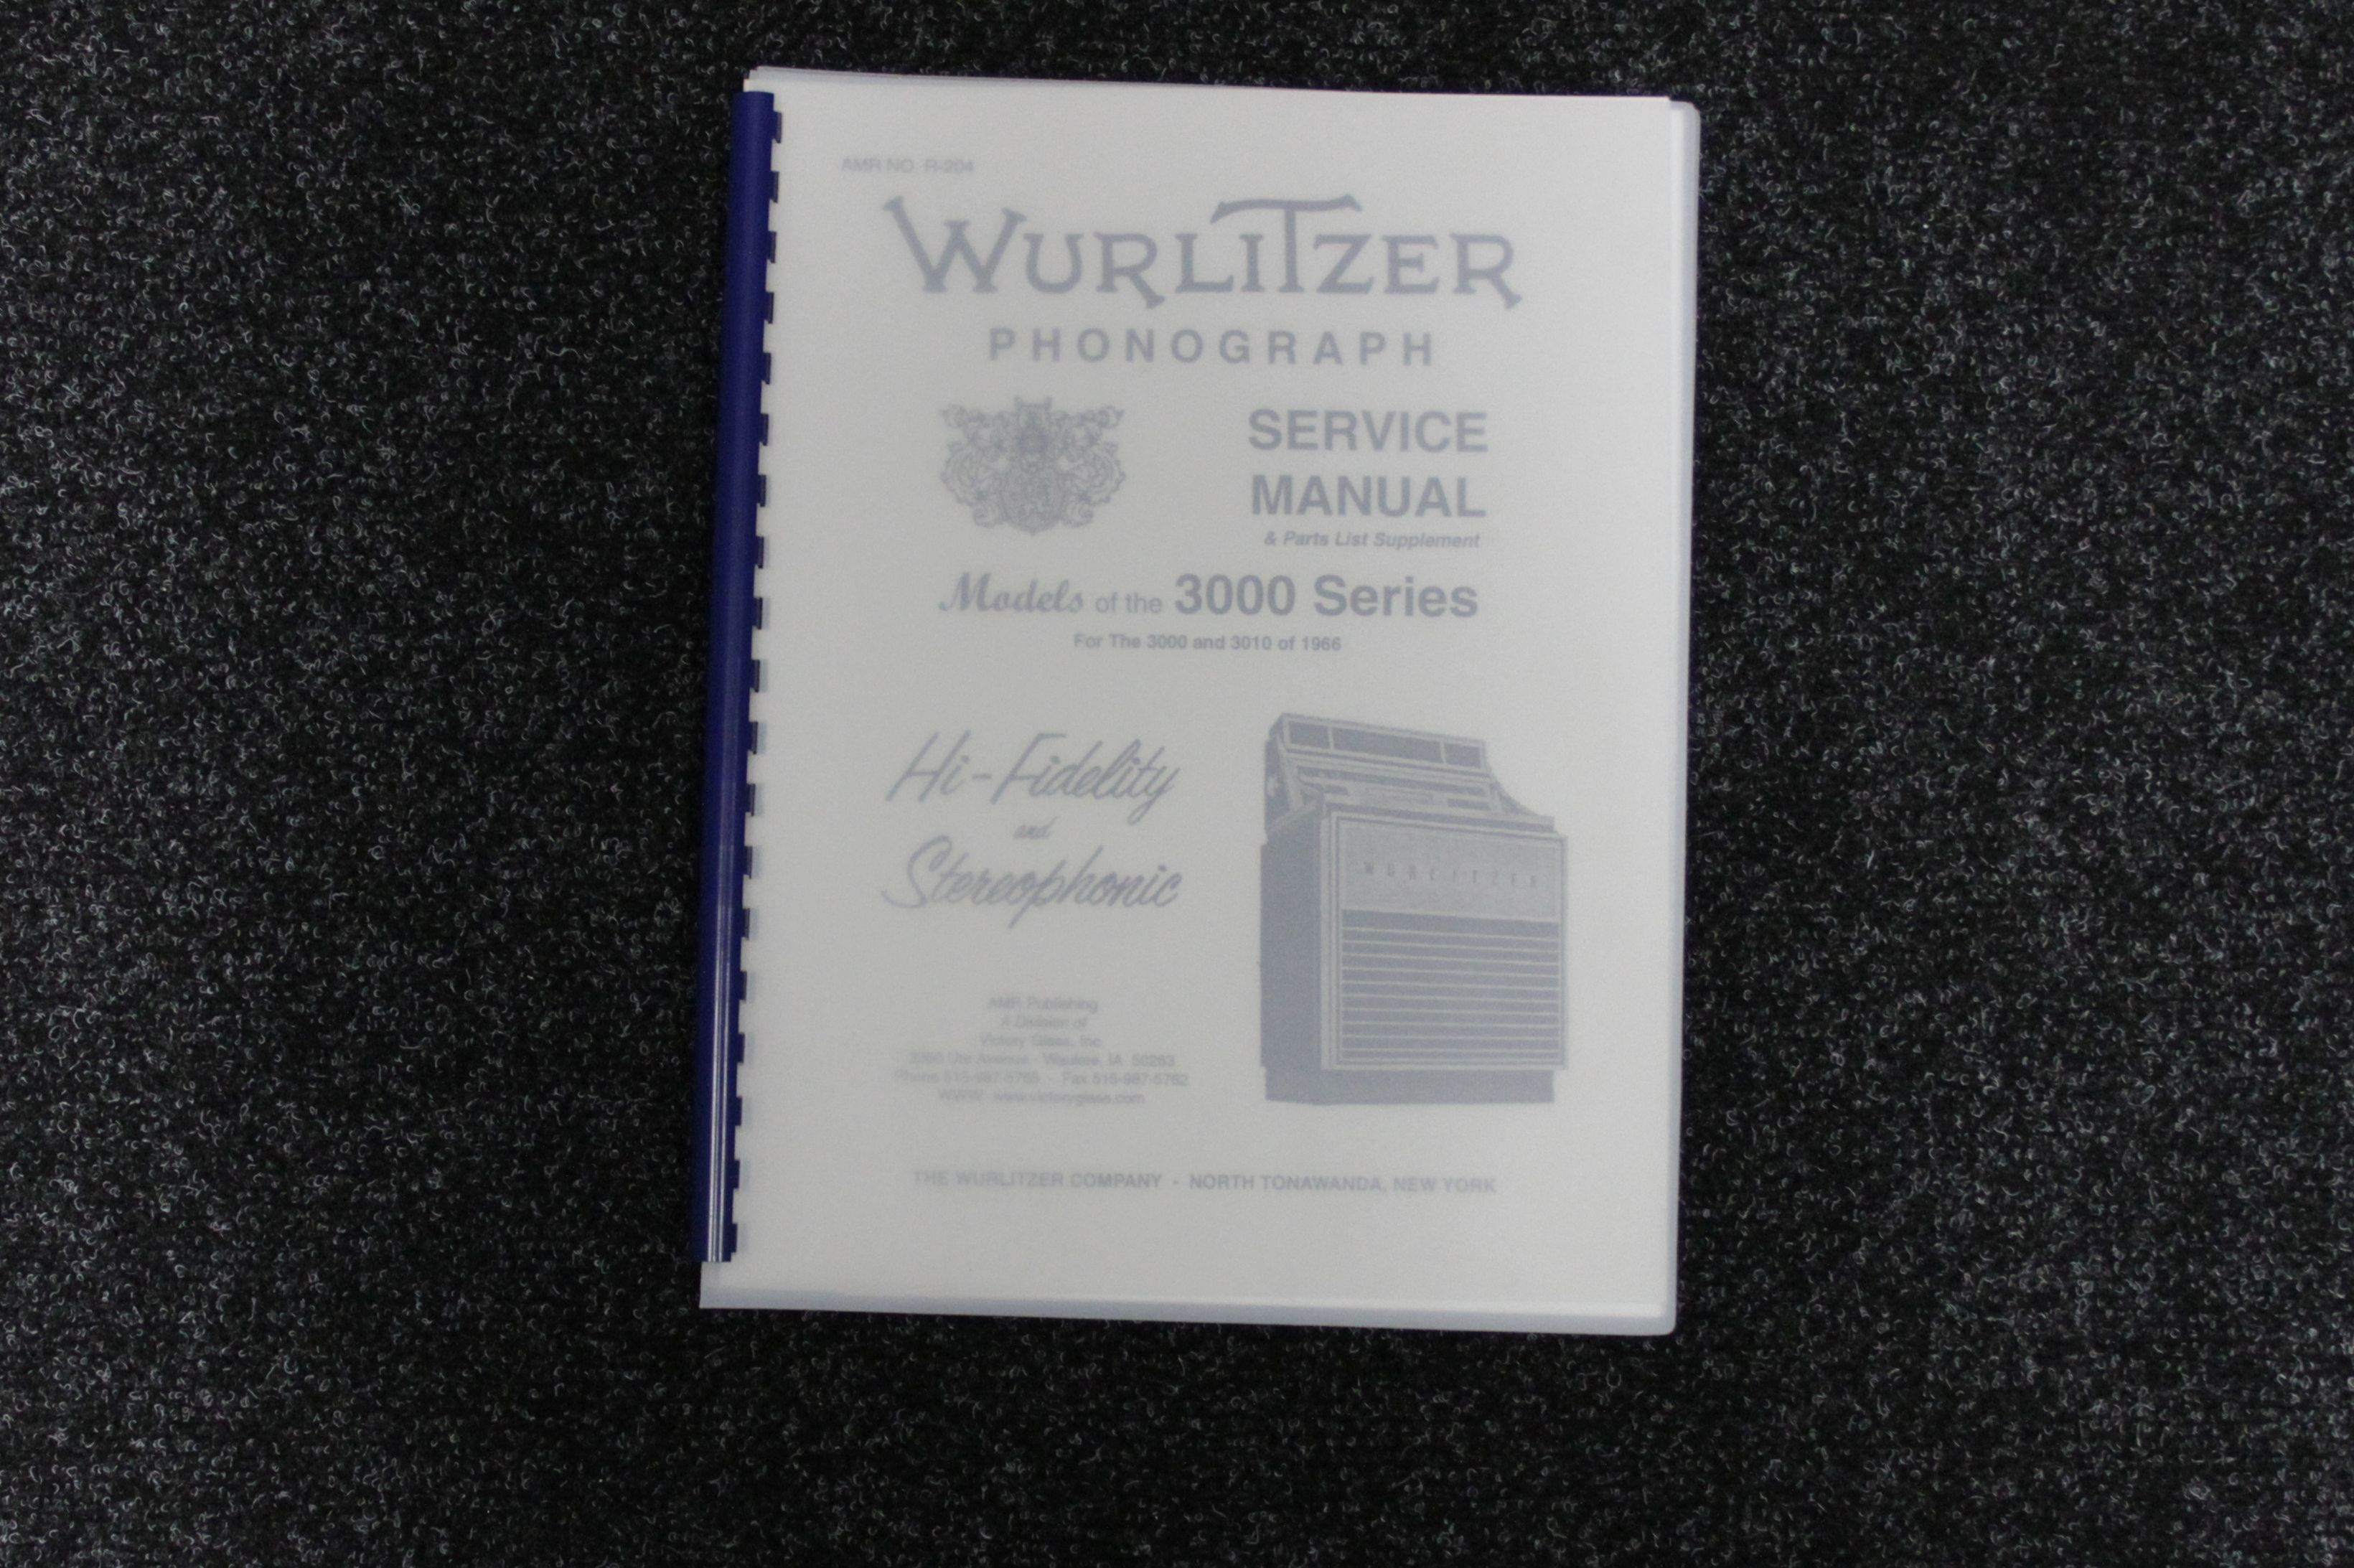 Wurlitzer Service Manual 3000 series